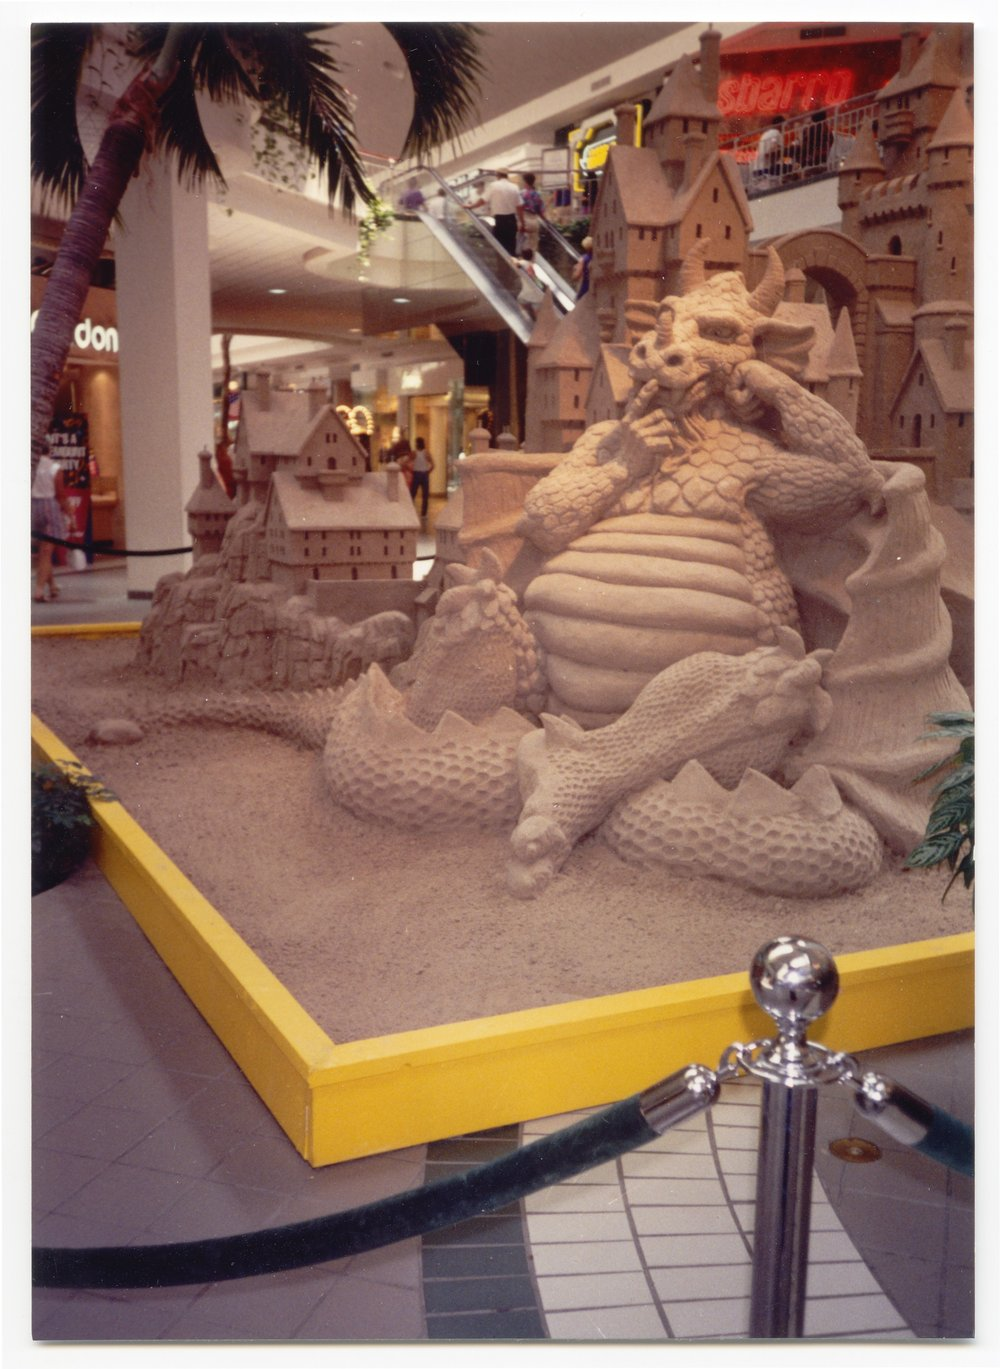 Sand sculptures in Topeka, Kansas - 1 *57